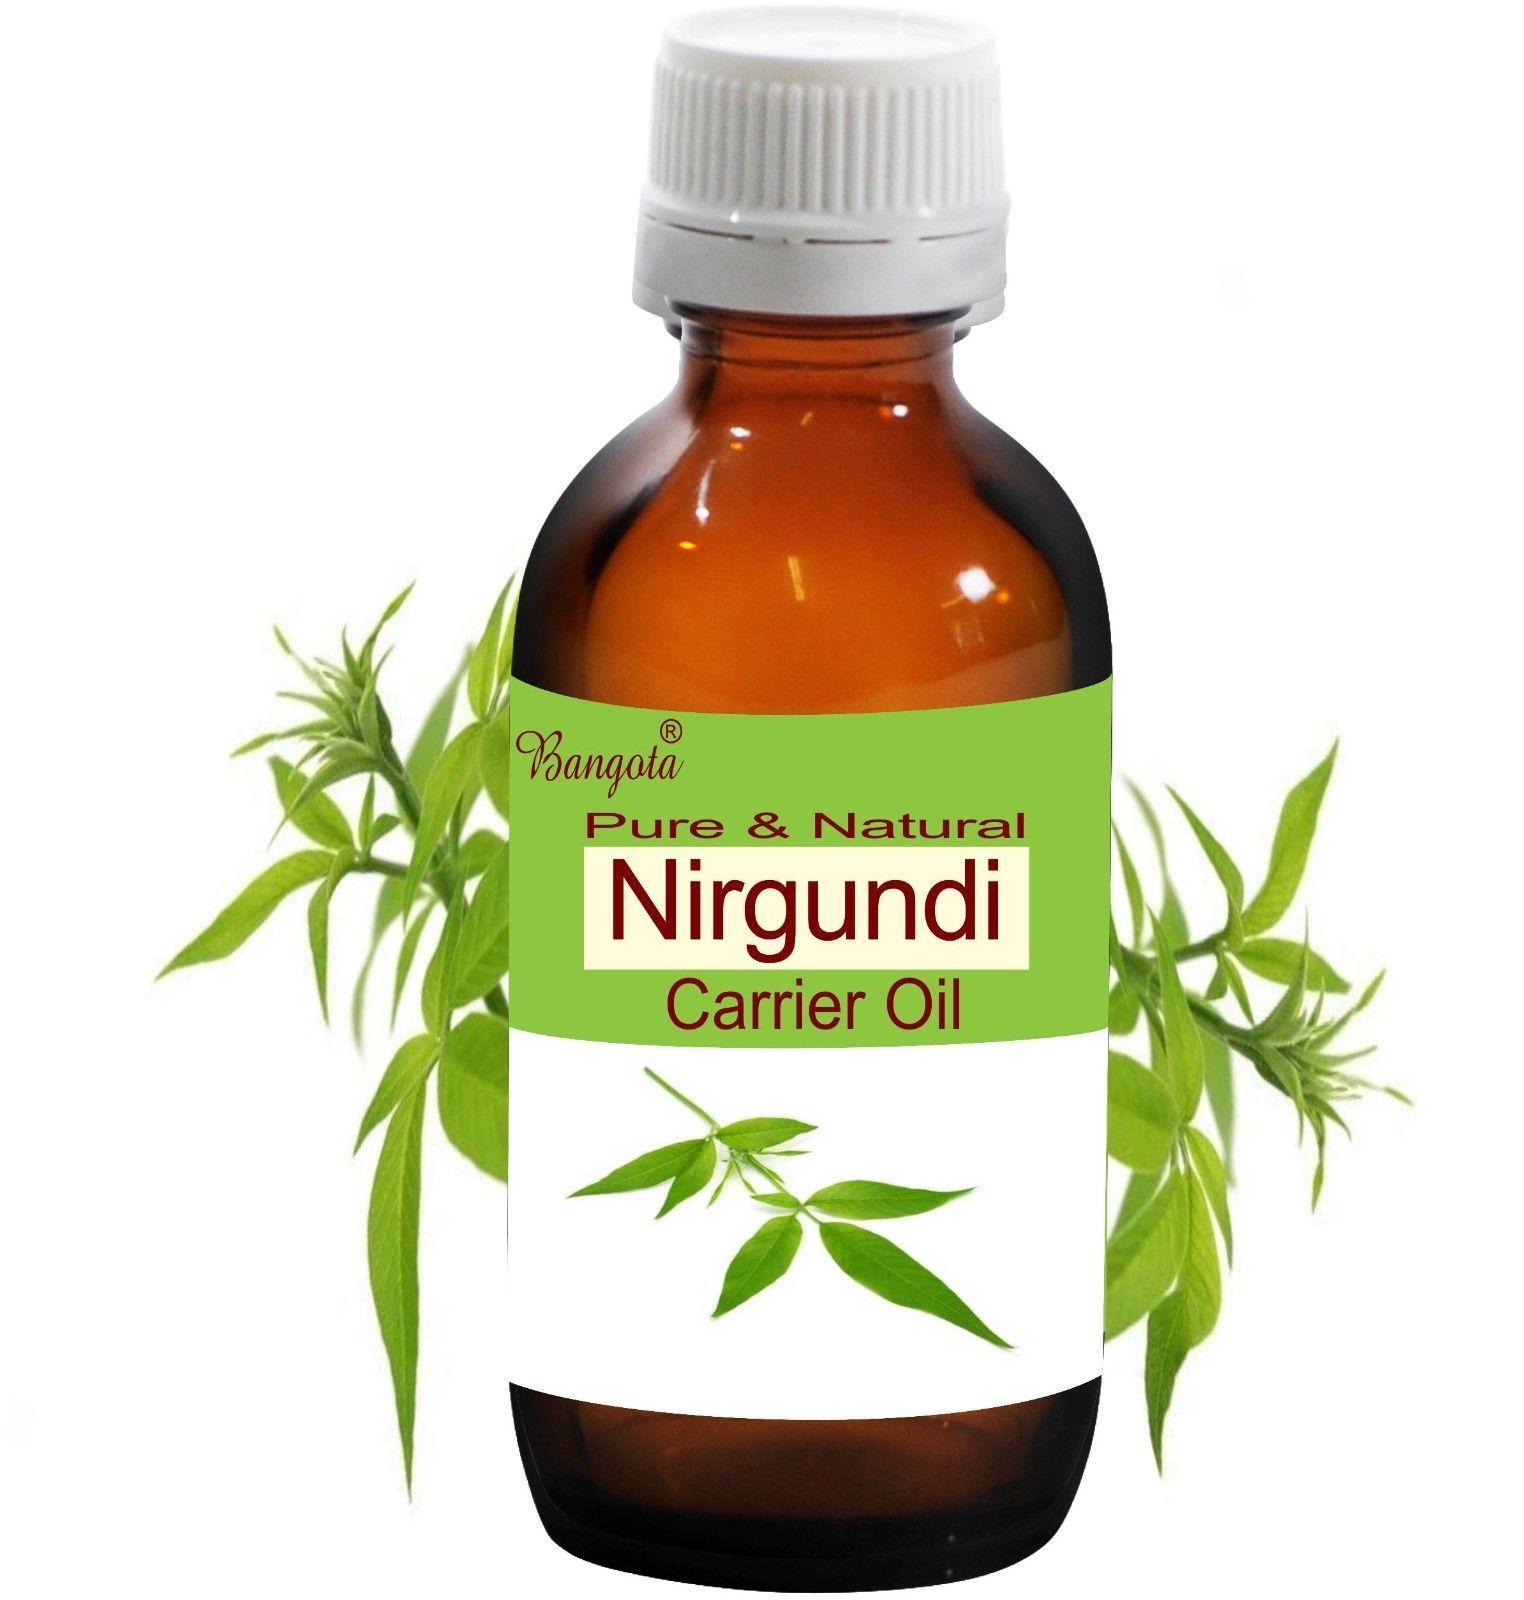 Primary image for Nirgundi Oil- Pure & Natural Carrier Oil - 5 ml -250 ml Vitex Negundo by Bangota